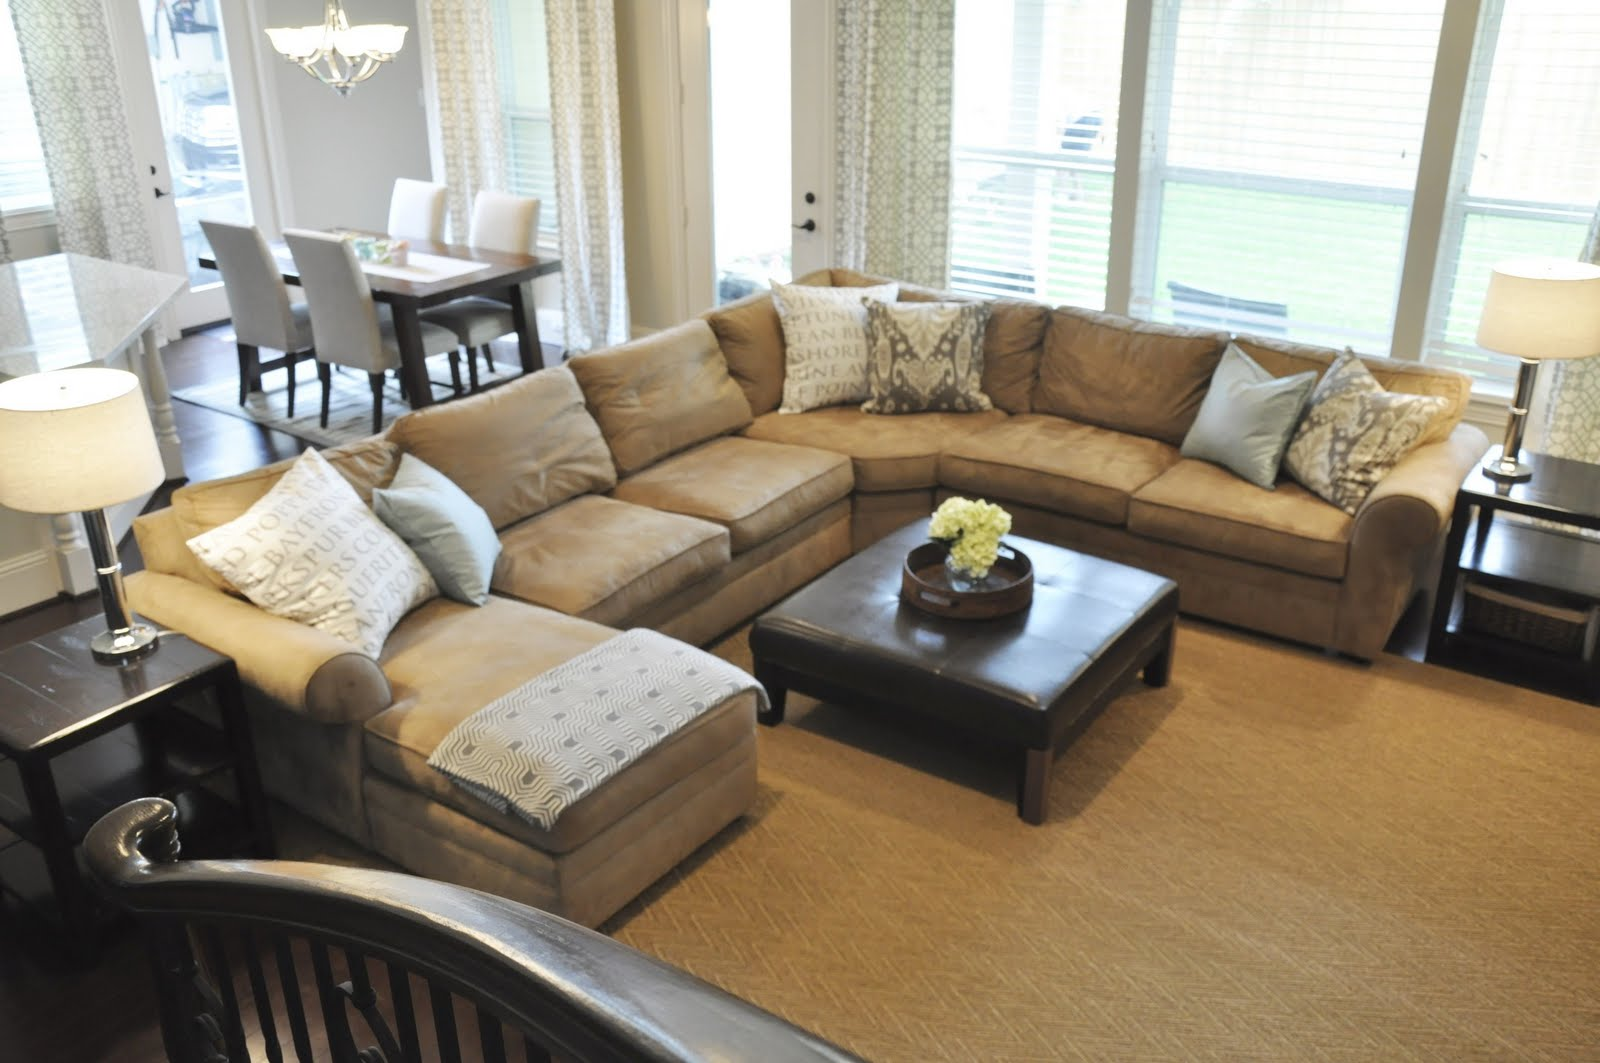 how to deep clean white leather sofa sundance fridays at our house honey we 39re home